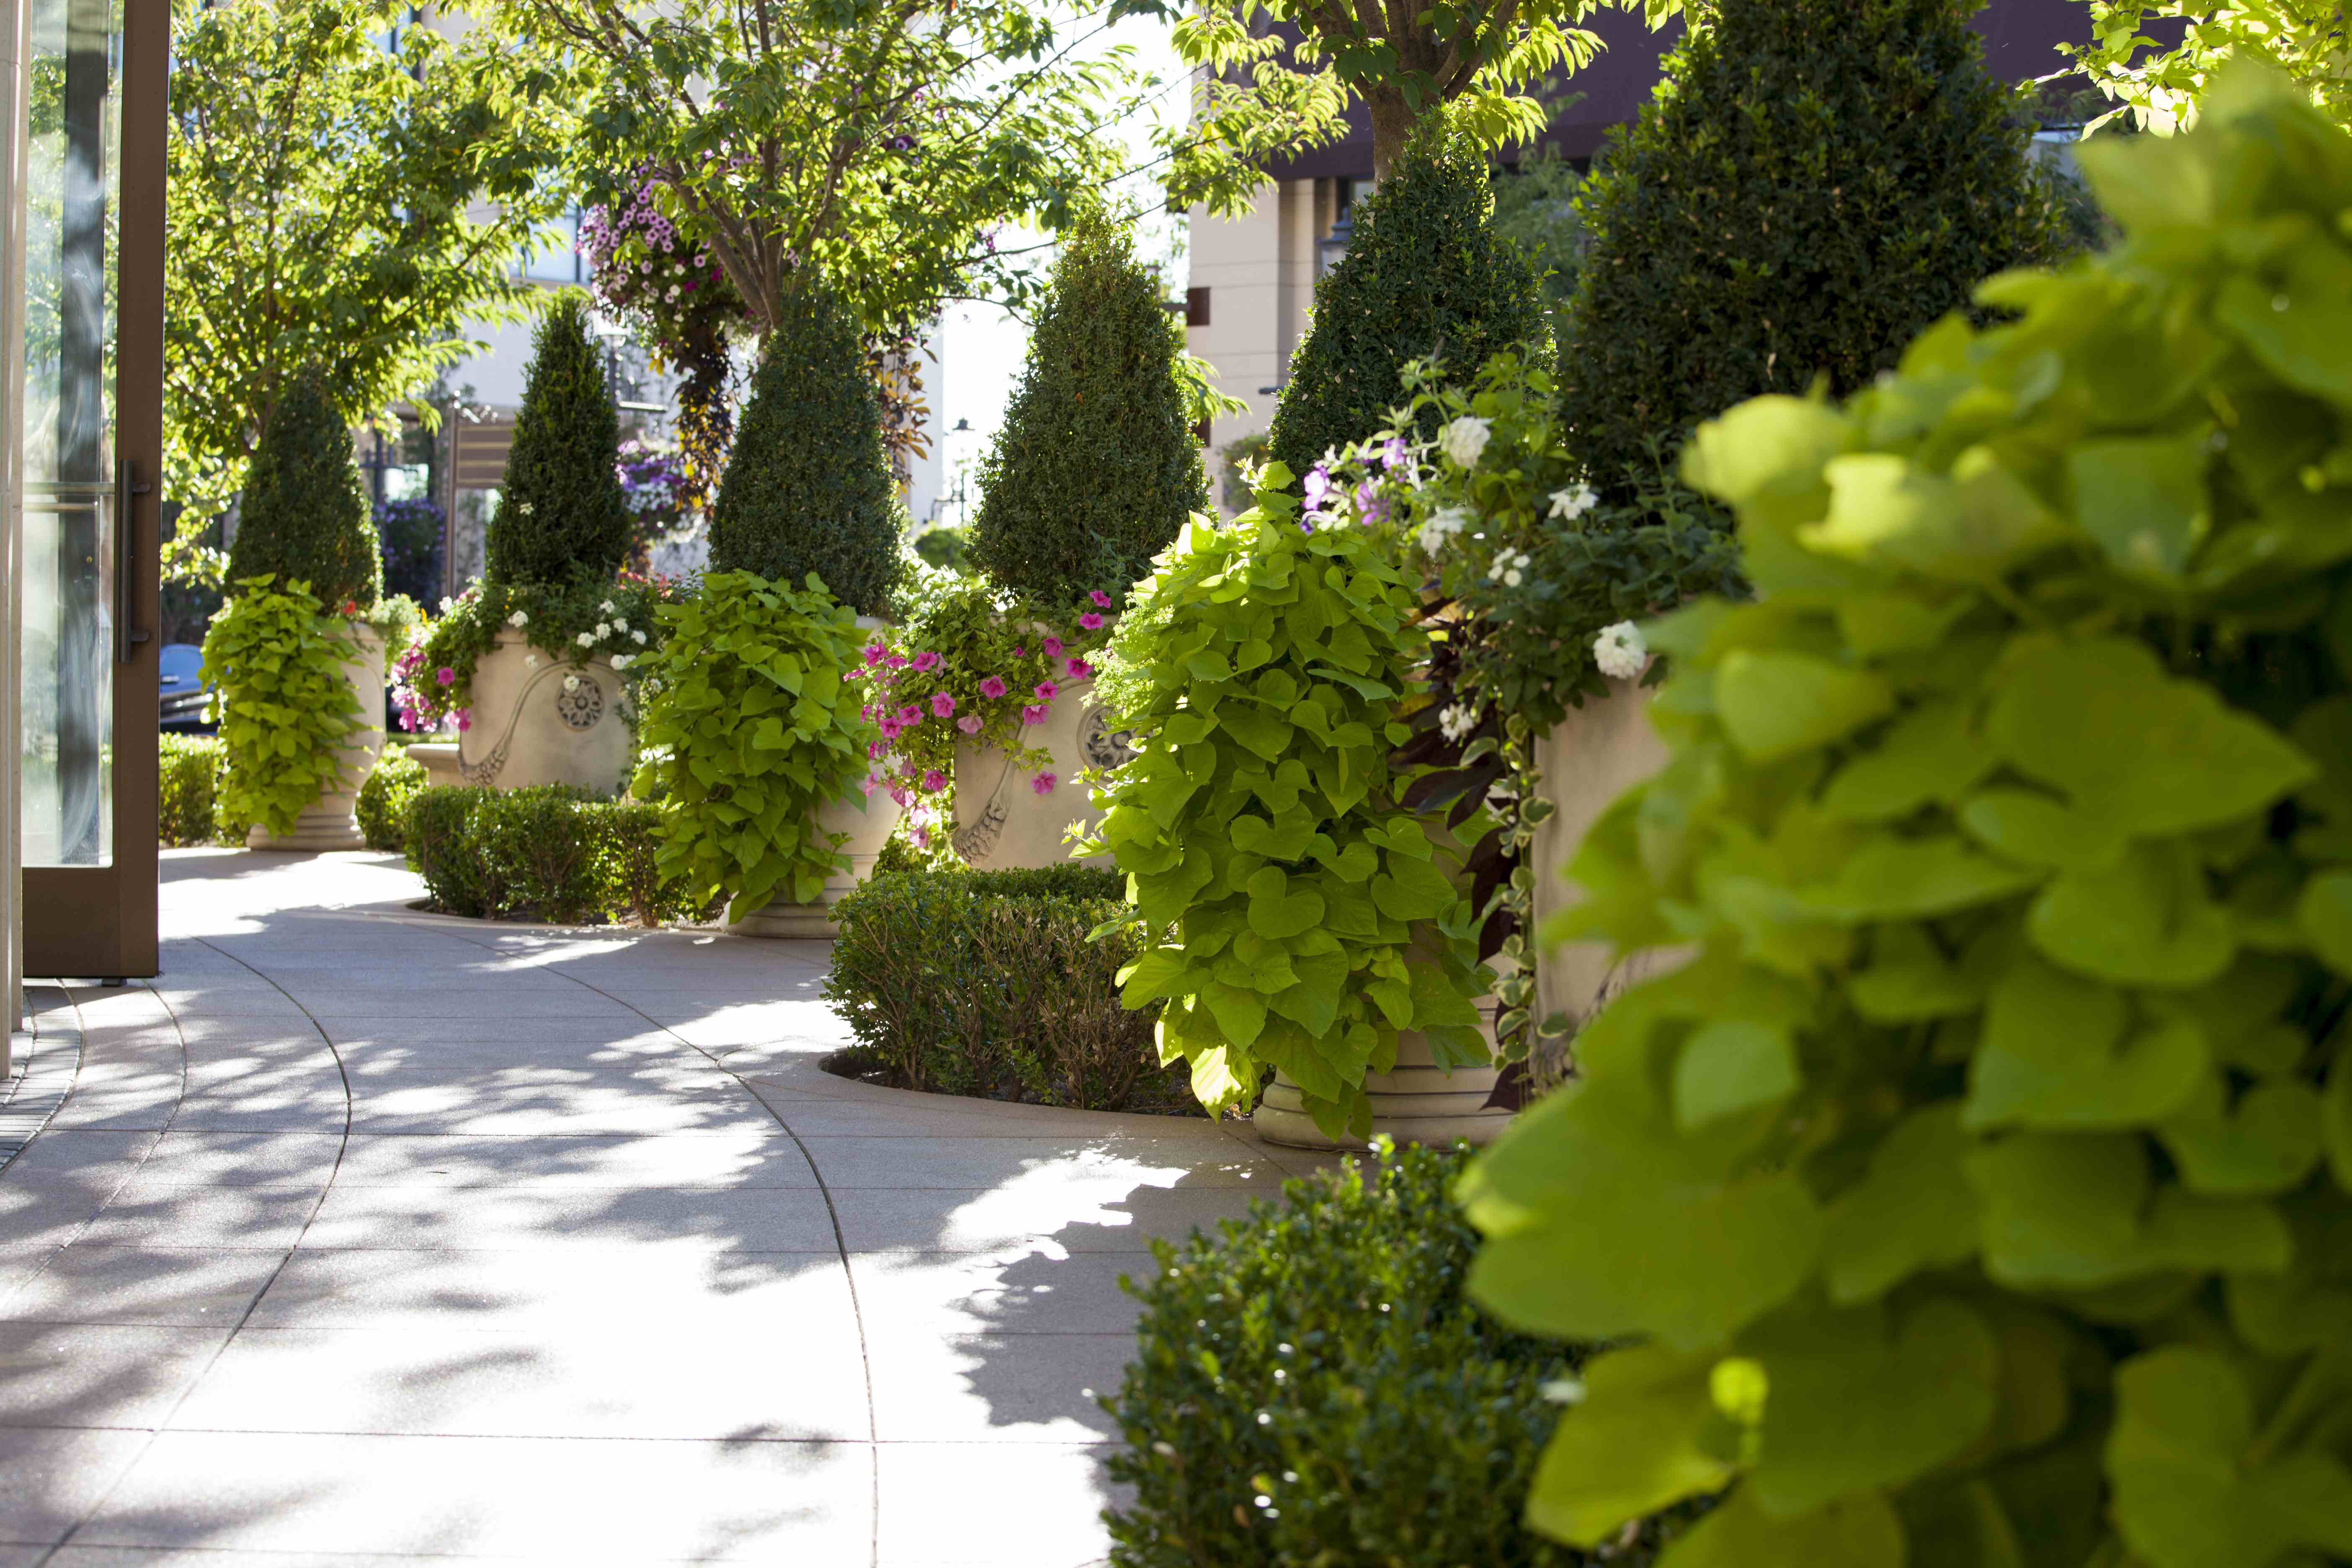 well designed sidewalk aligned with small green trees in terra-cotta pots and trees and sunshine